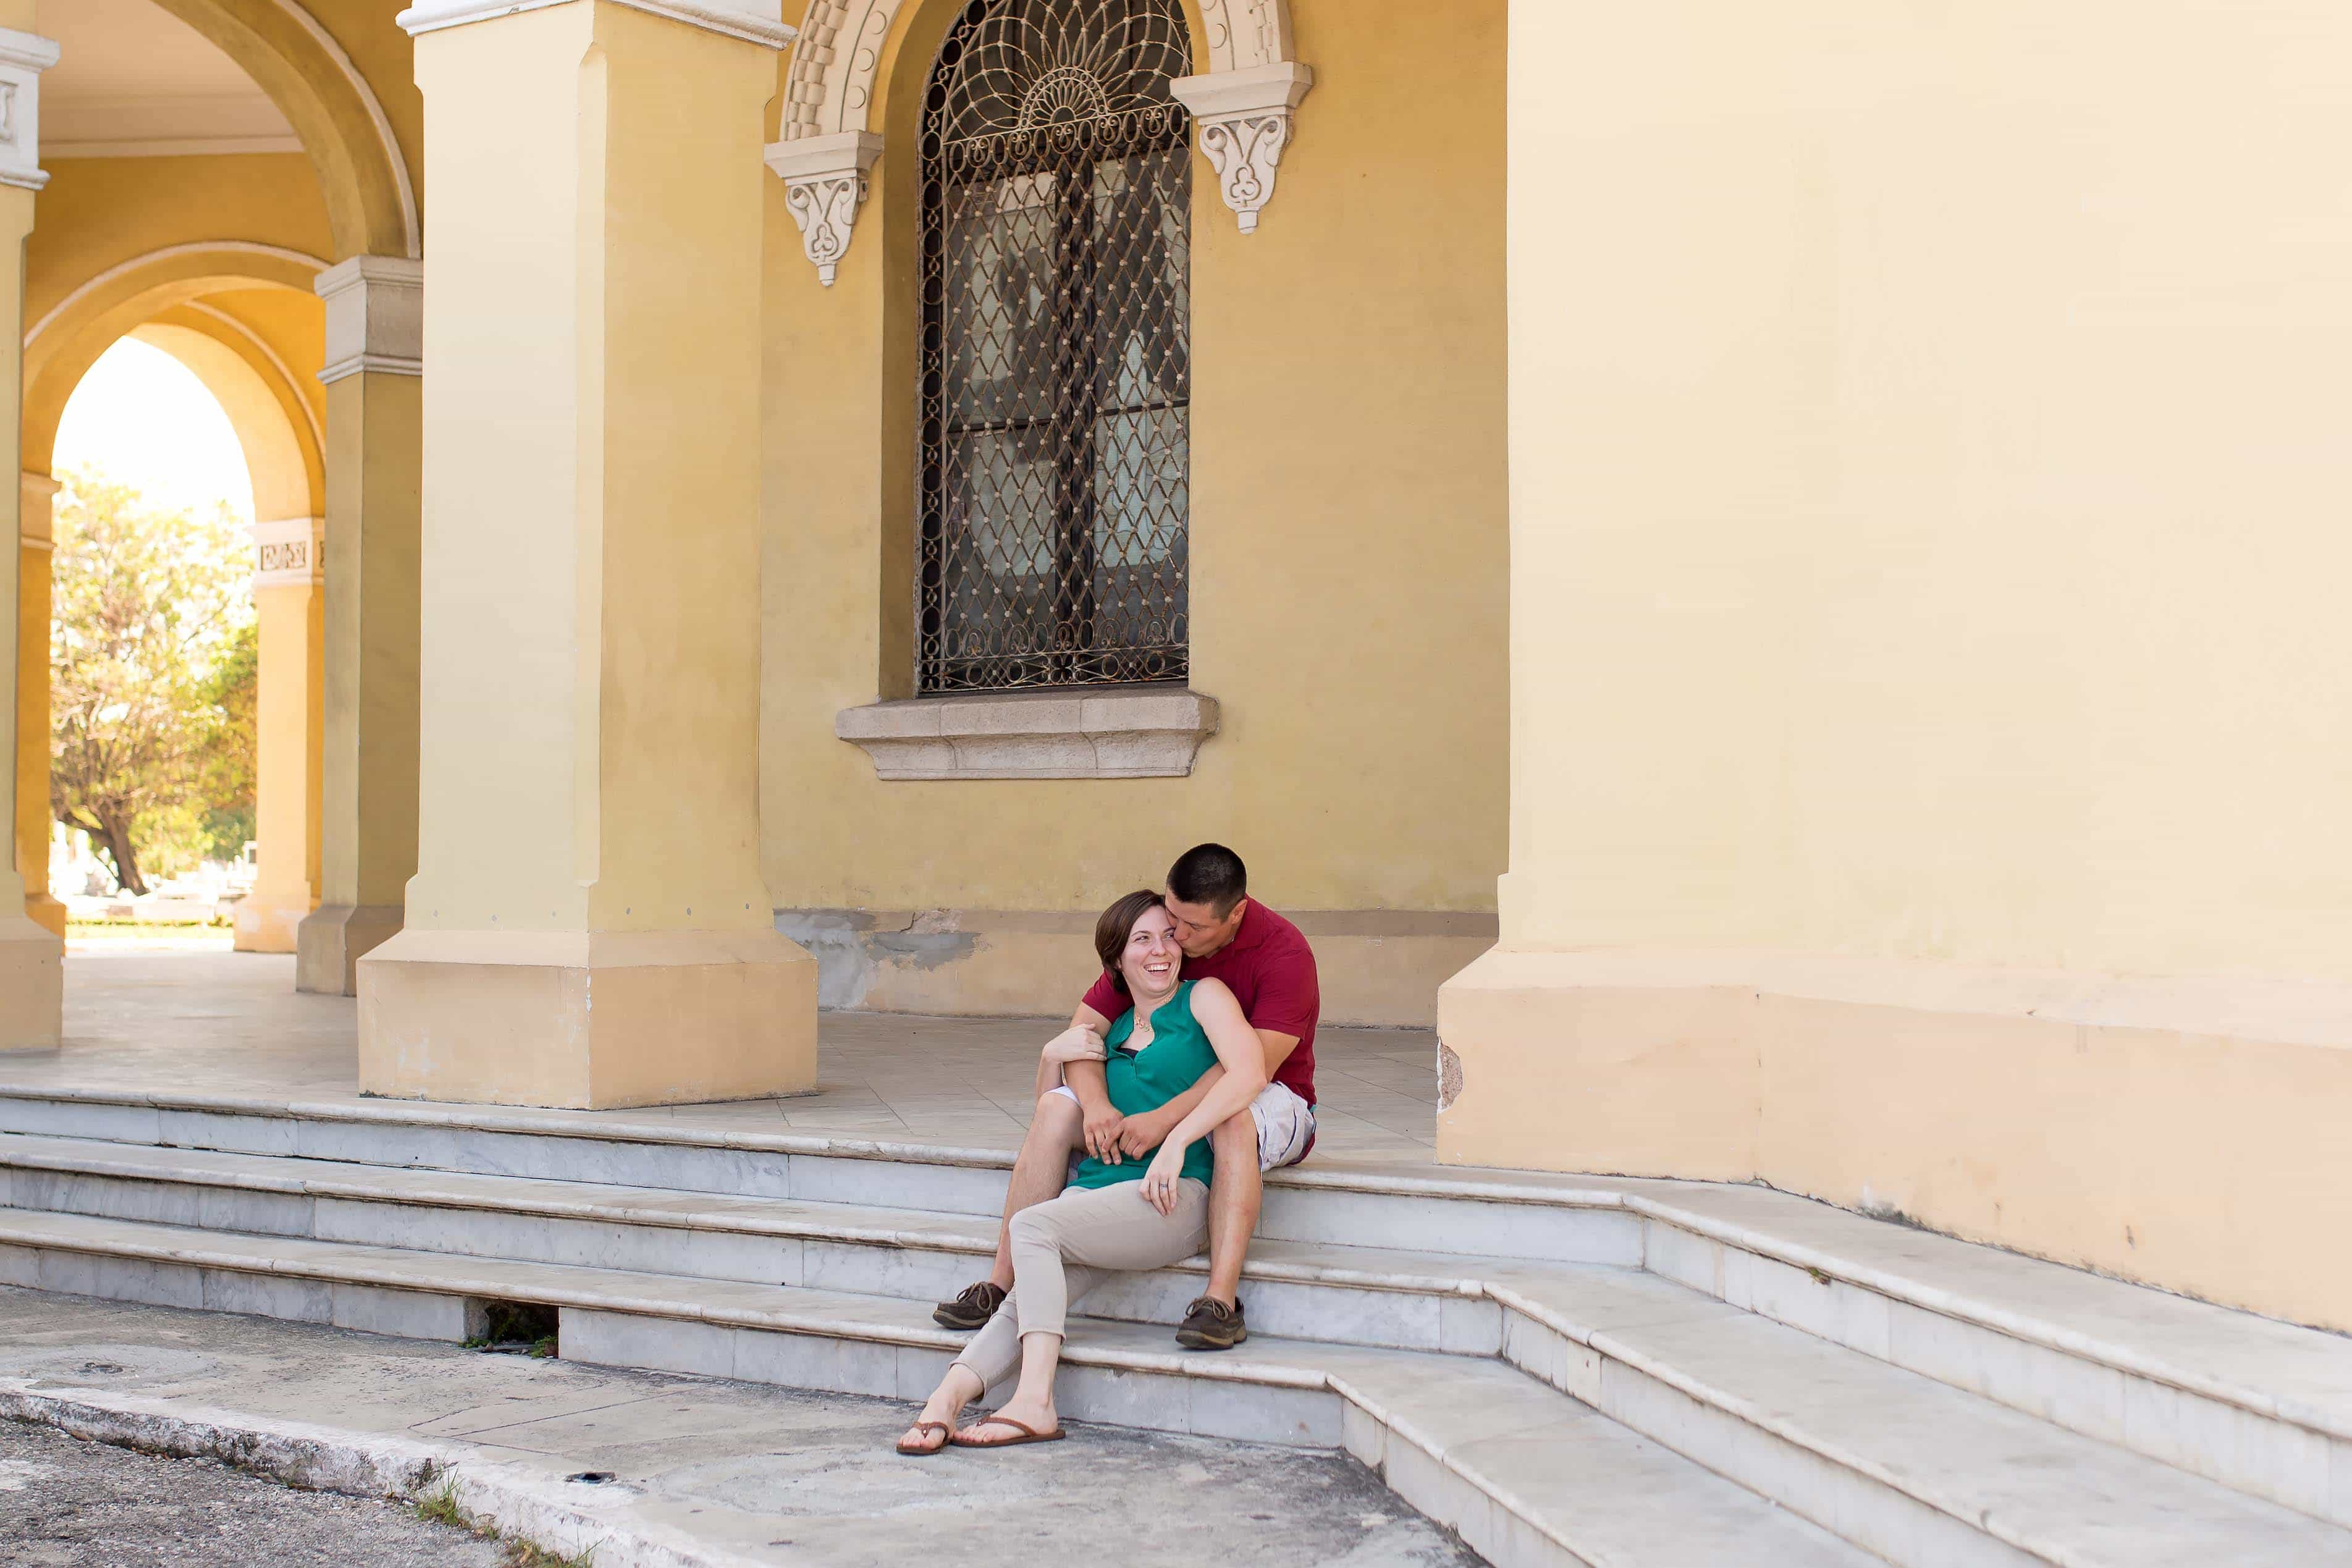 Couples Photos in Cuba